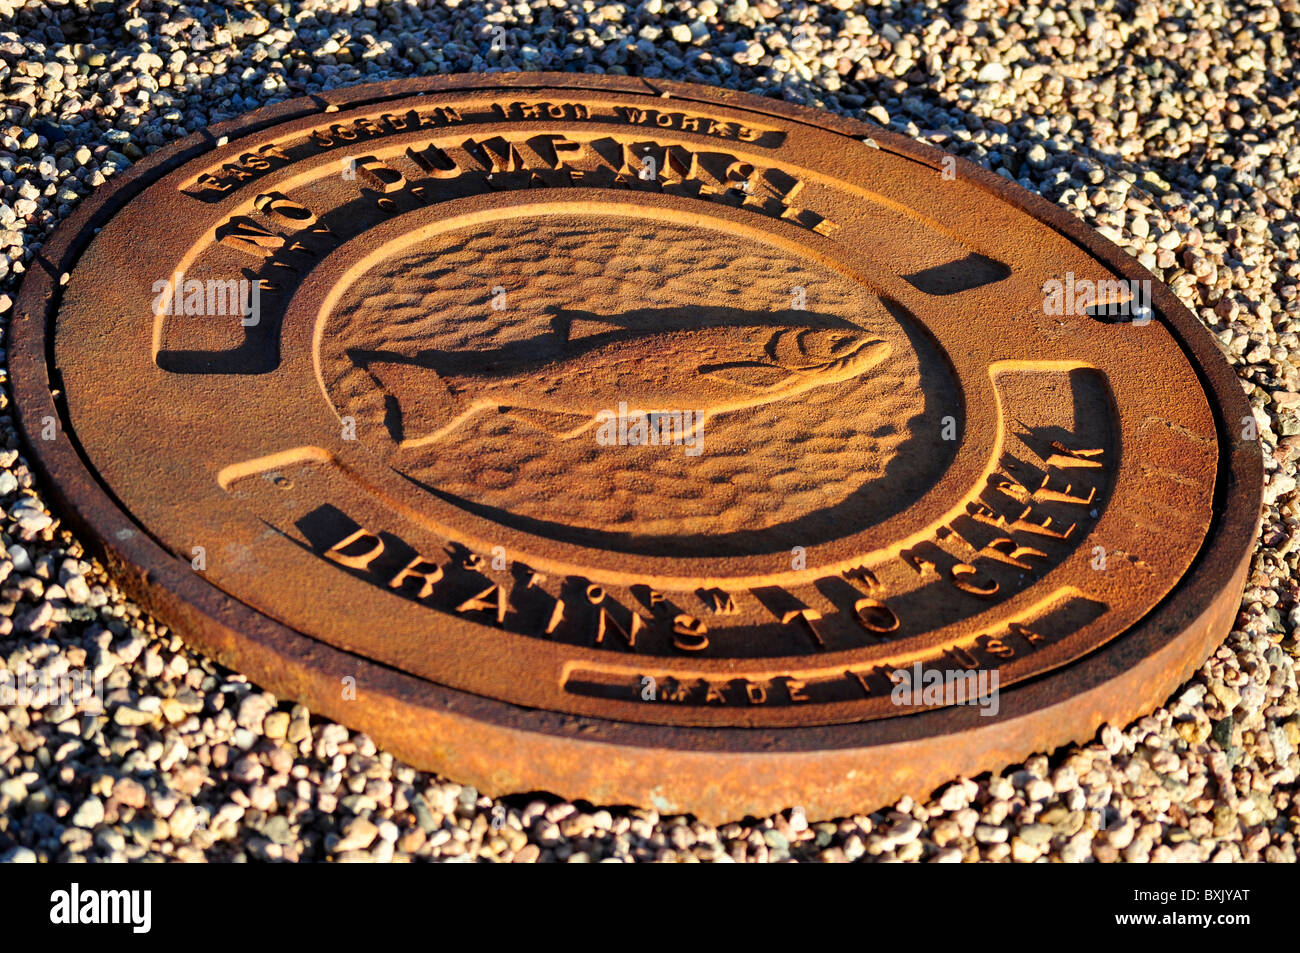 man hole cover - Stock Image